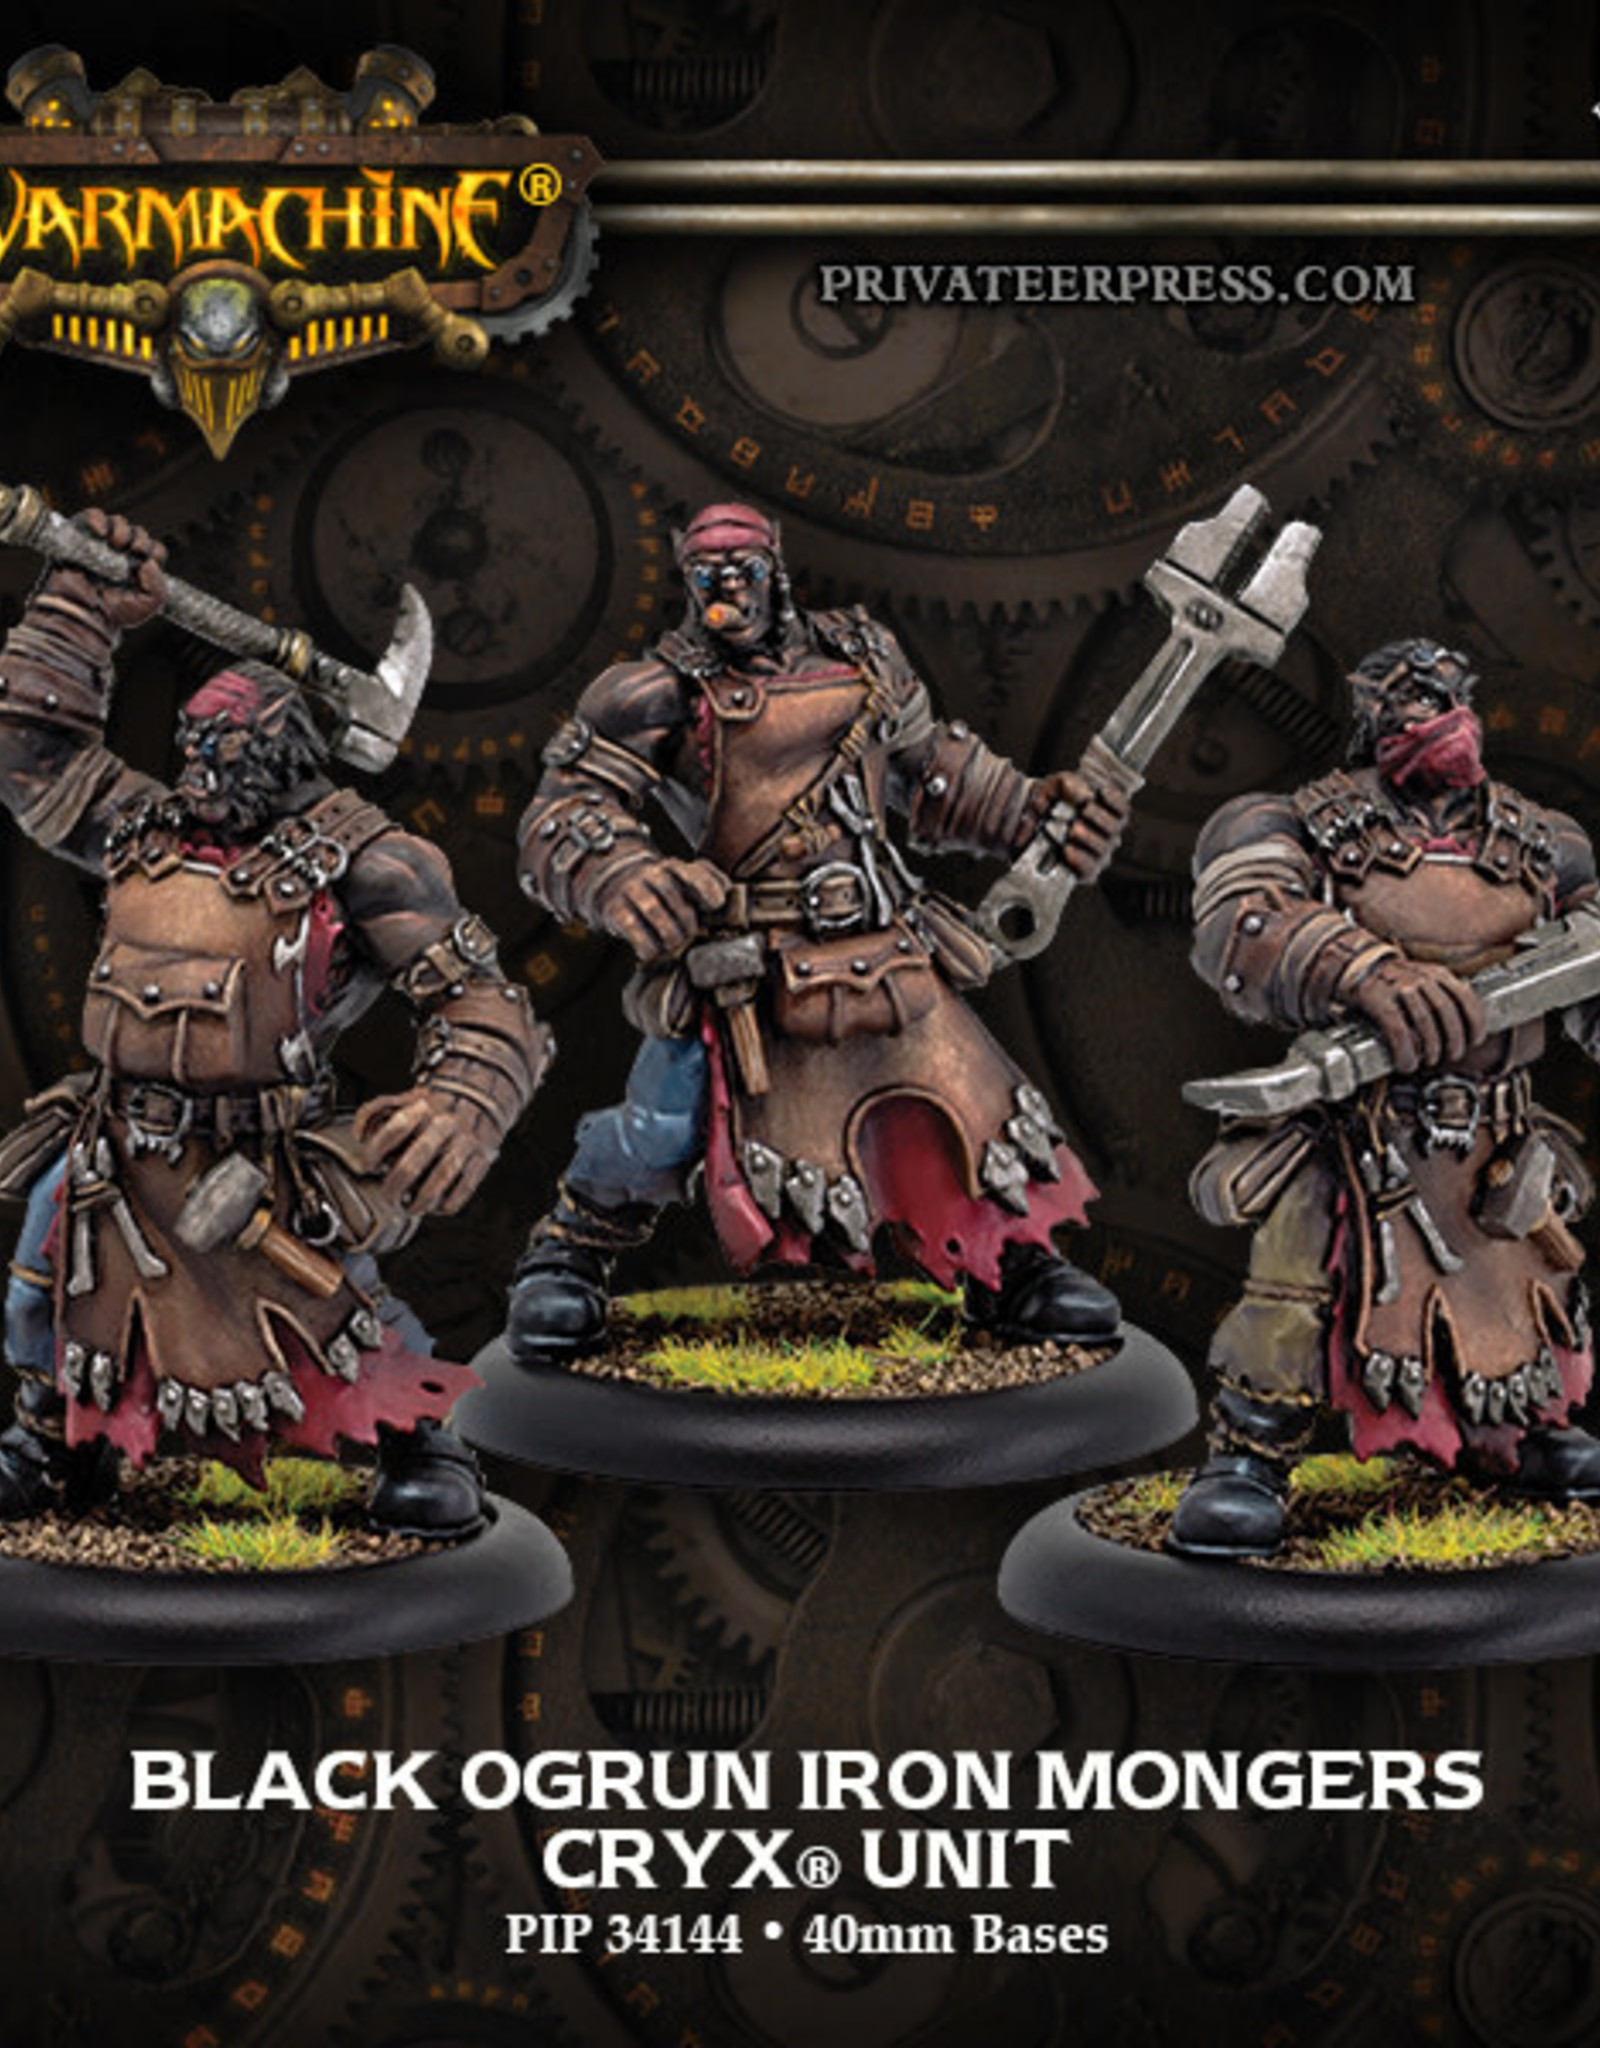 Warmachine Cryx - Black Ogrun Iron Mongers